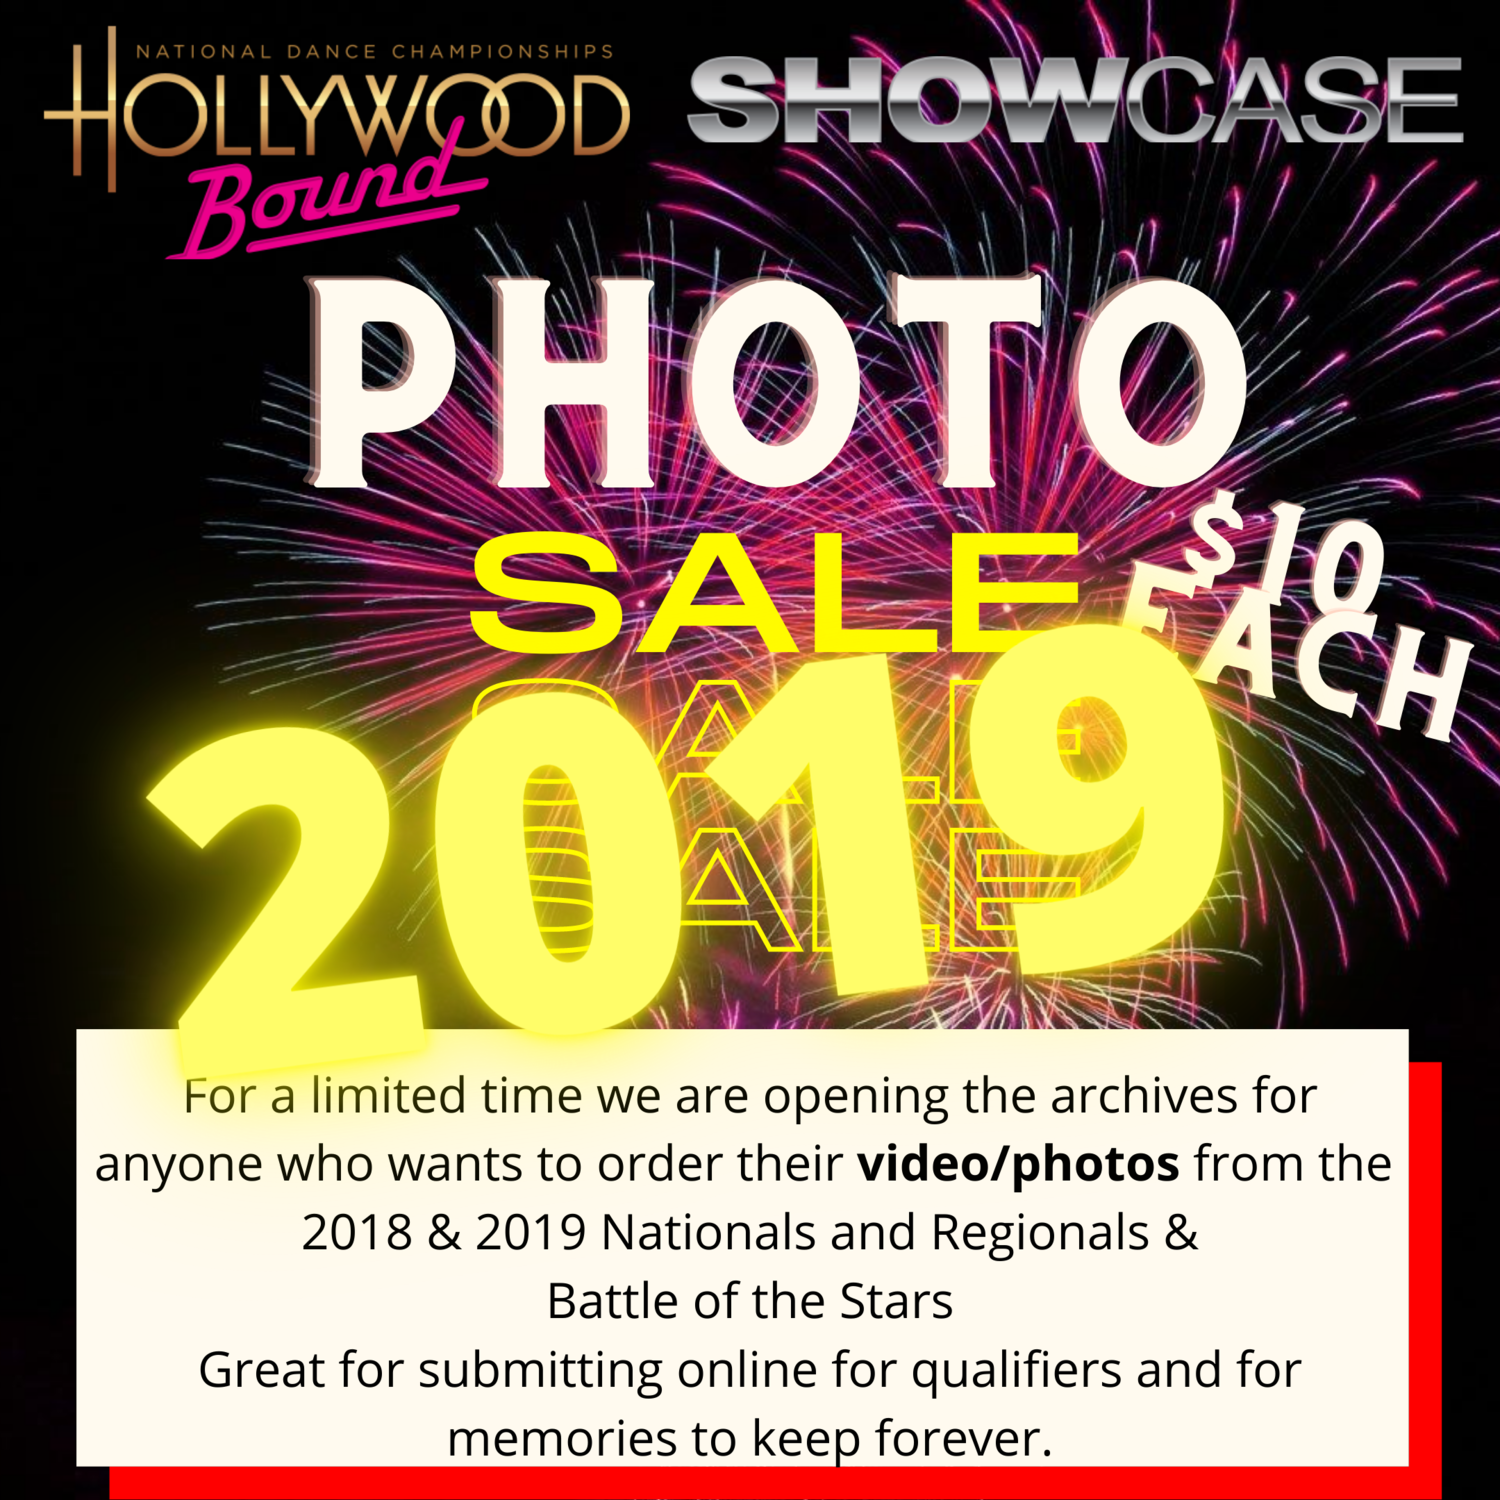 Photo orders 2019 events only